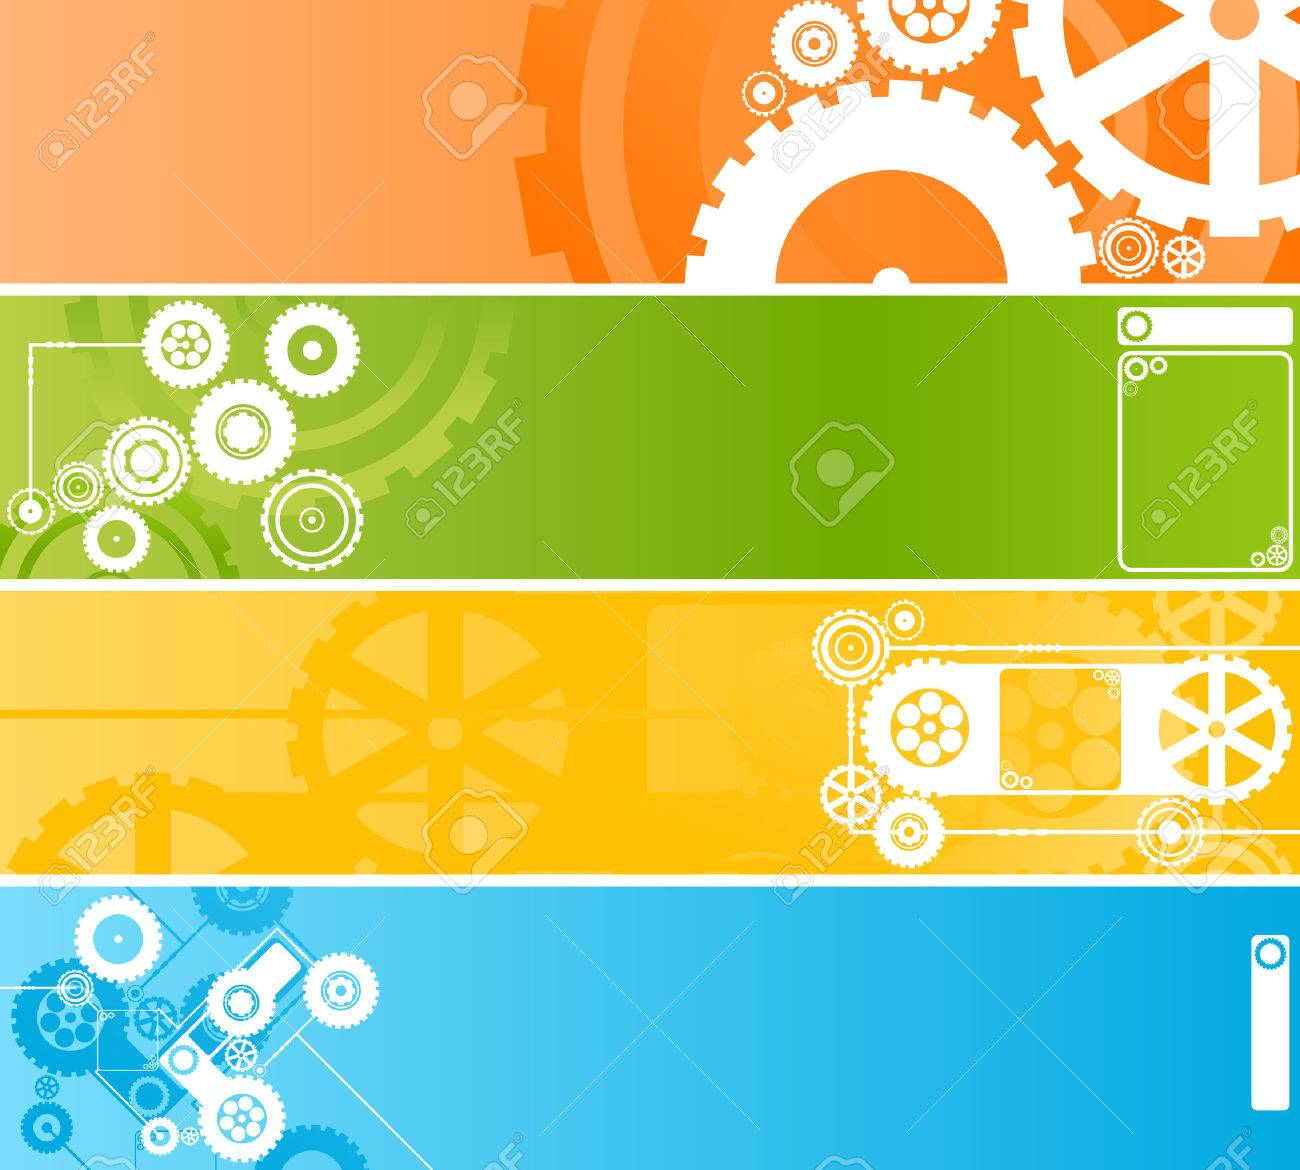 Vector illustration of four different technological and industrial web banners or backgrounds. Highly detailed in various colors. Stock Vector - 2651378